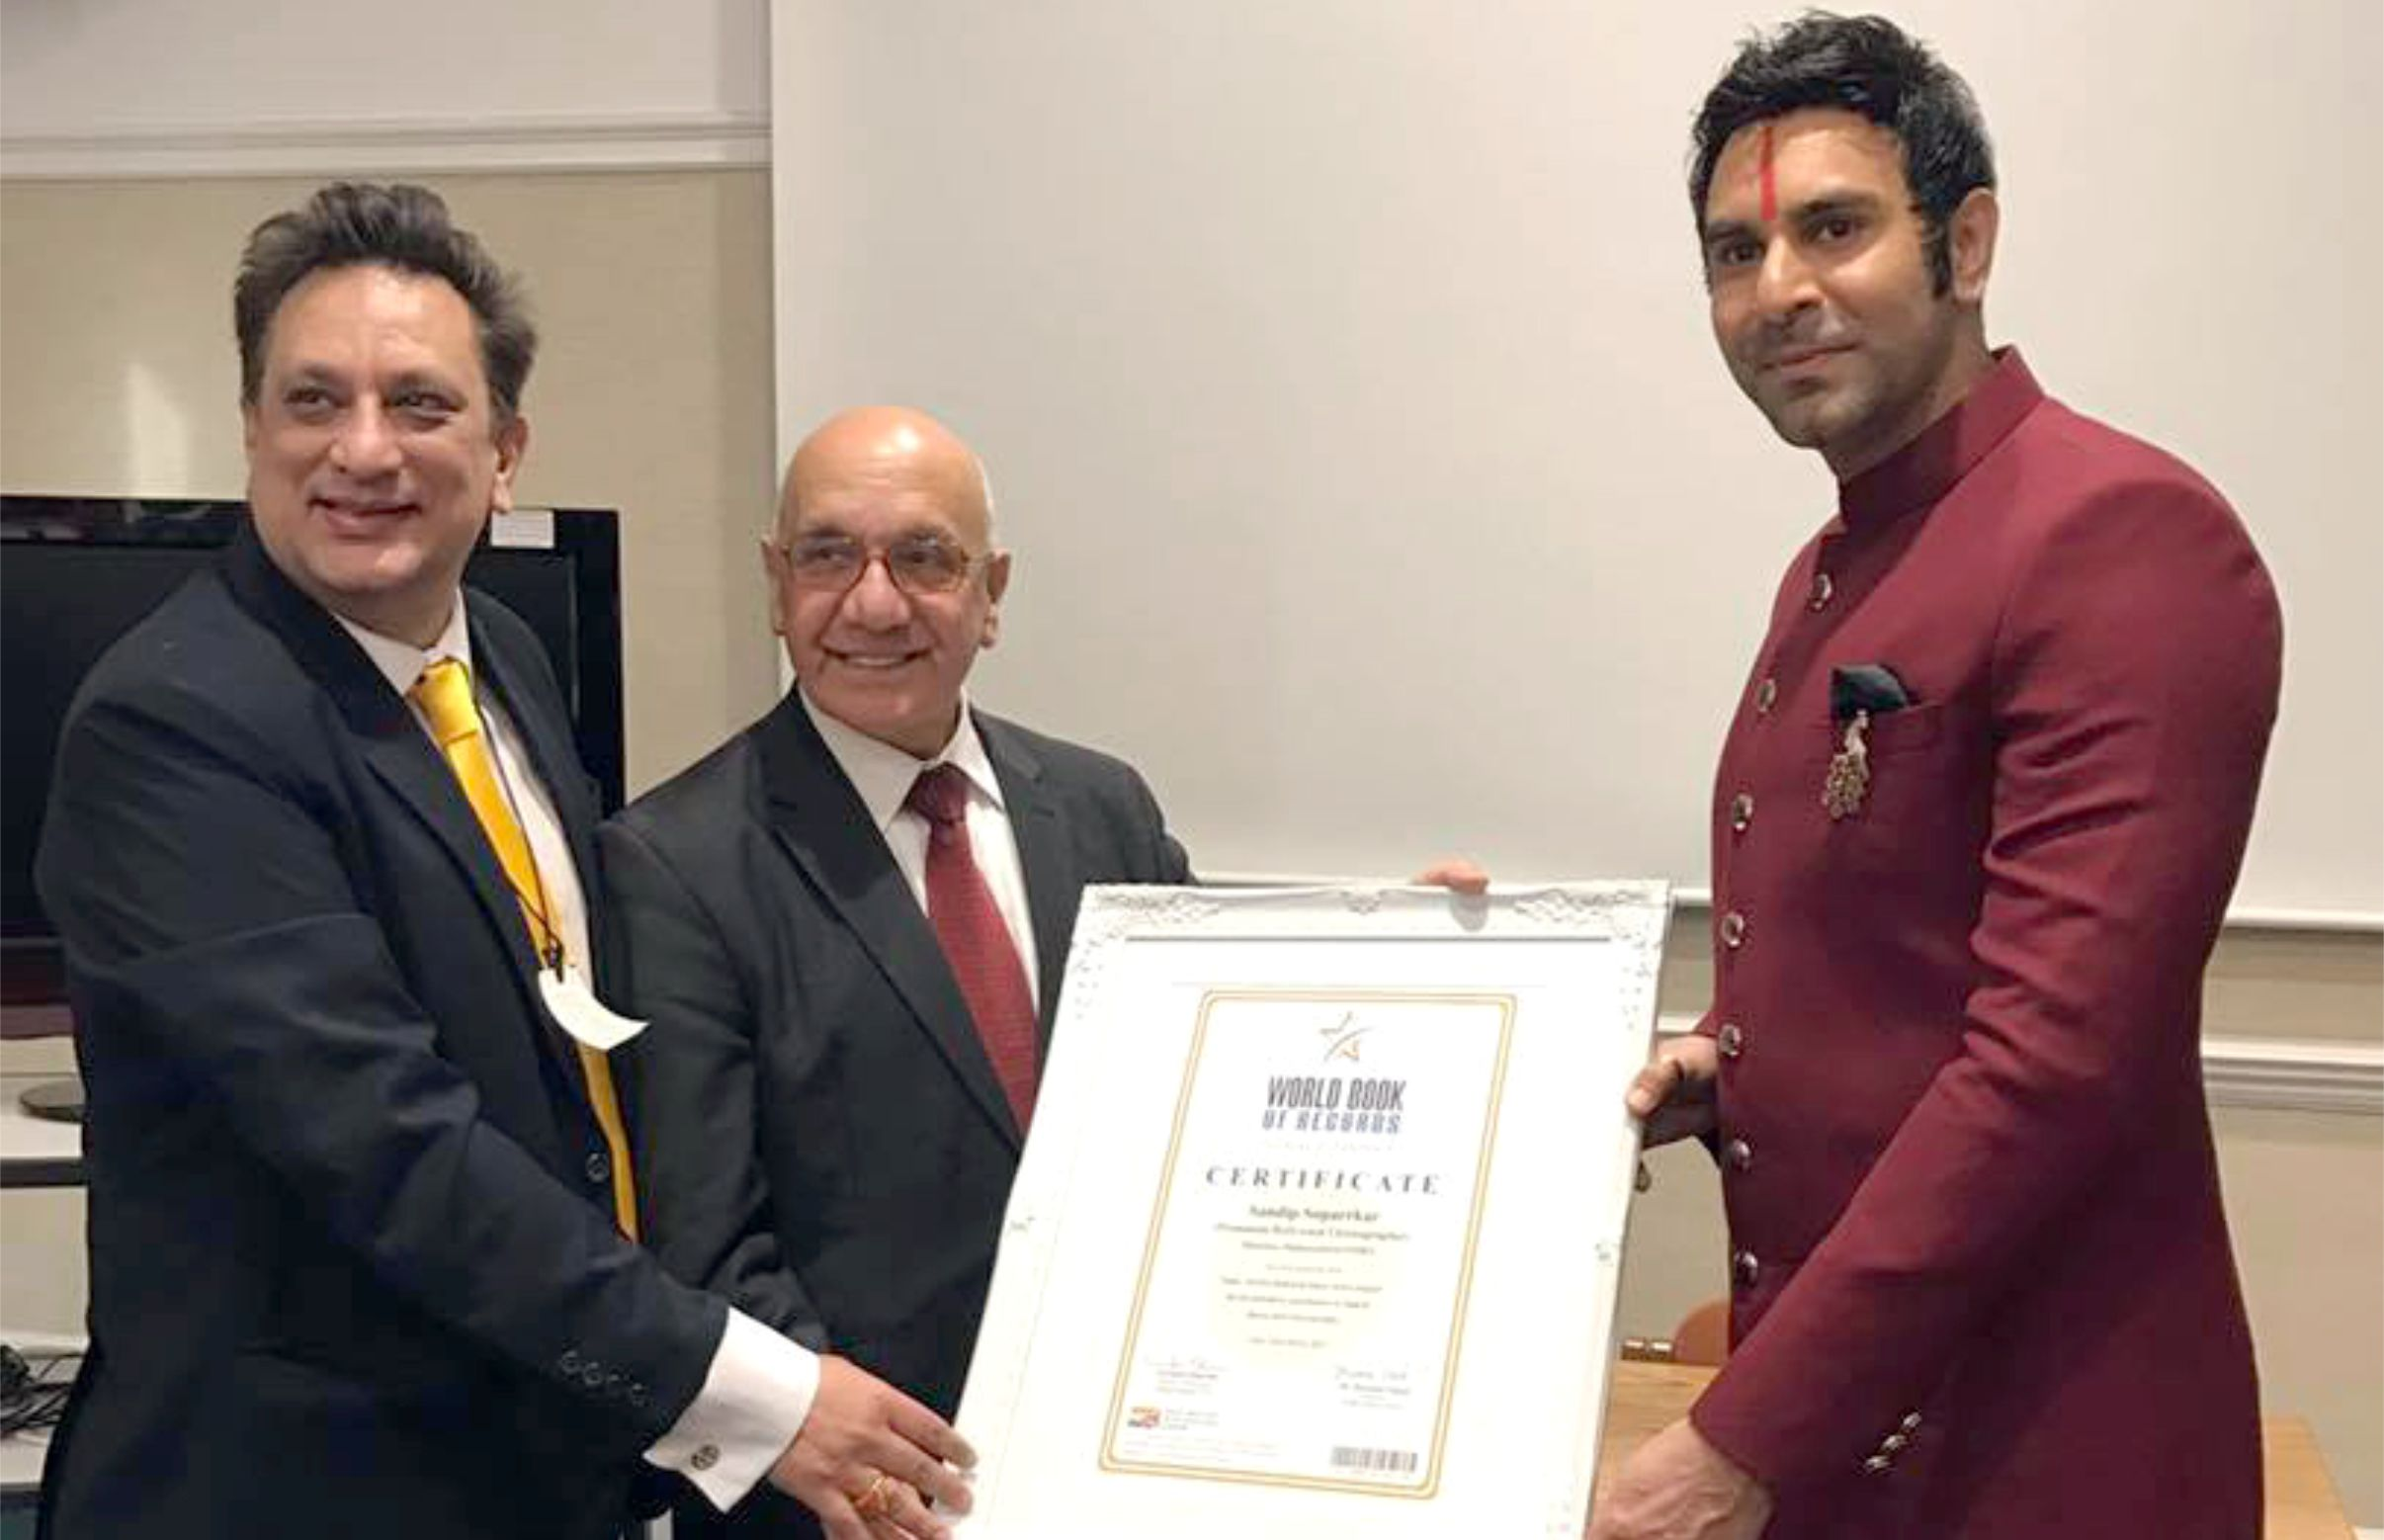 MP Virendra Sharma honours Sandip Soparrkar by World Book of Records in British Parliament